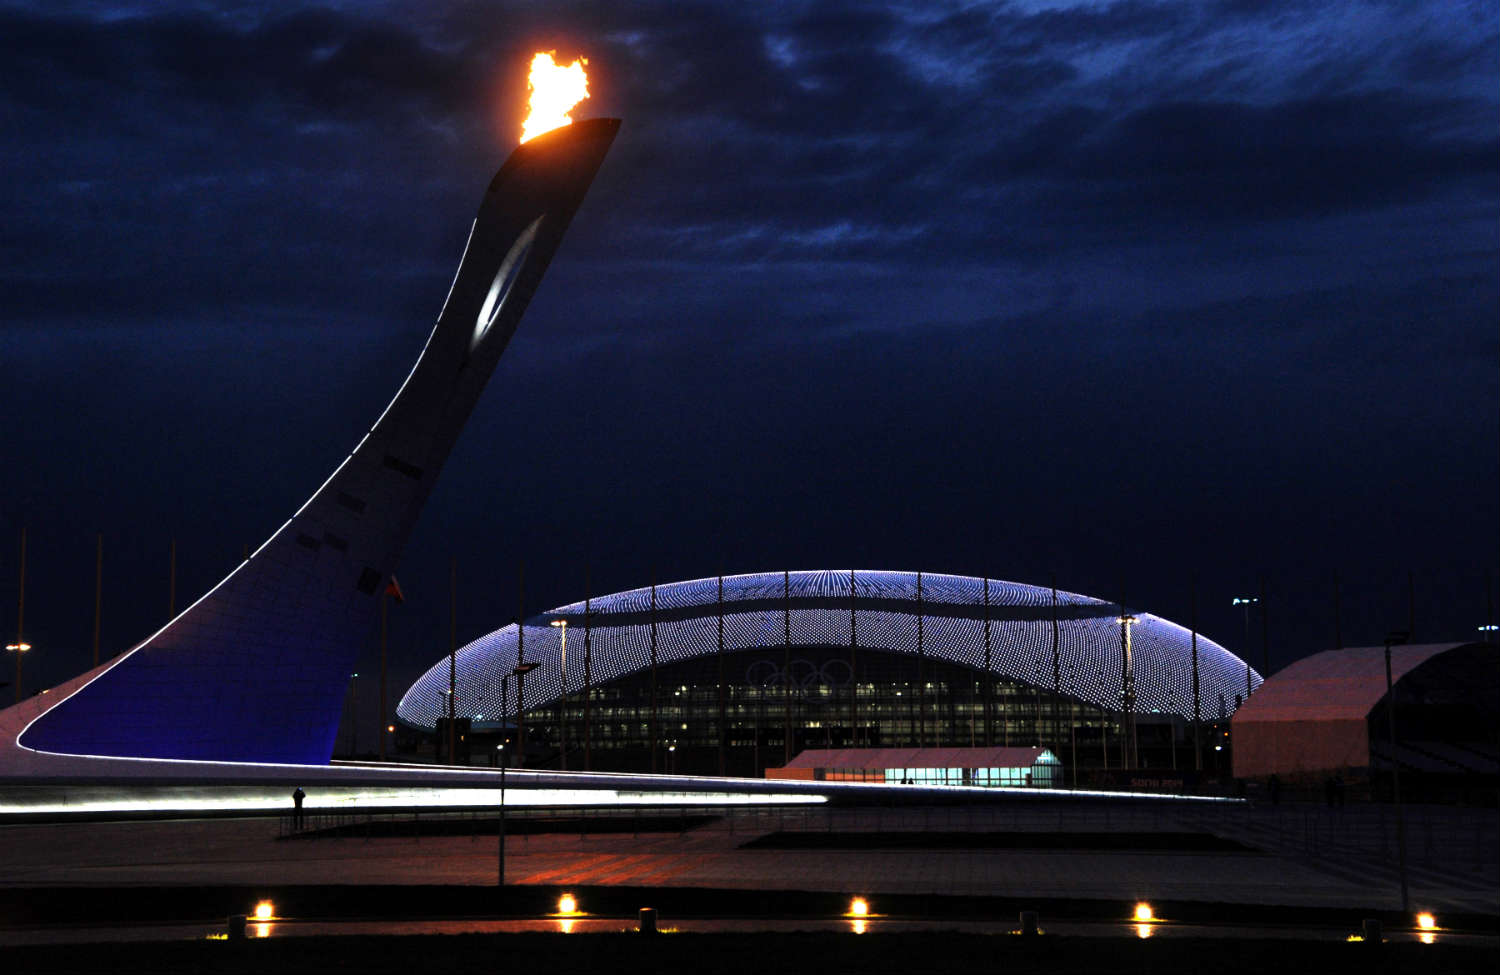 The organizers of the Sochi Games have been criticized for failing to protect the environment